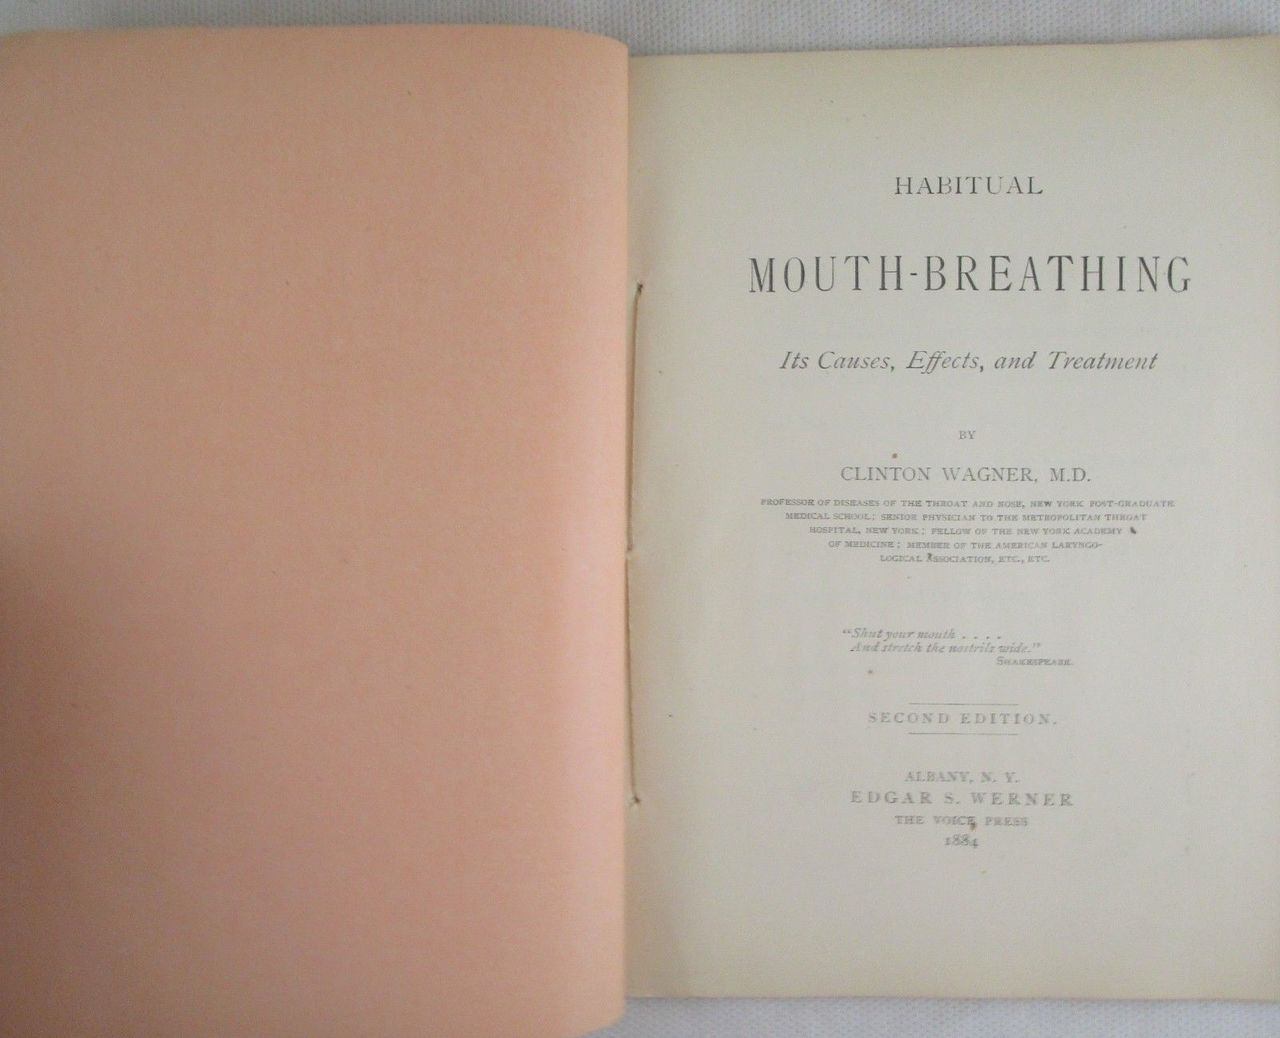 HABITUAL MOUTH-BREATHING: ITS CAUSES, EFFECTS & TREATMENT, by Clinton Wagner MD - 1884